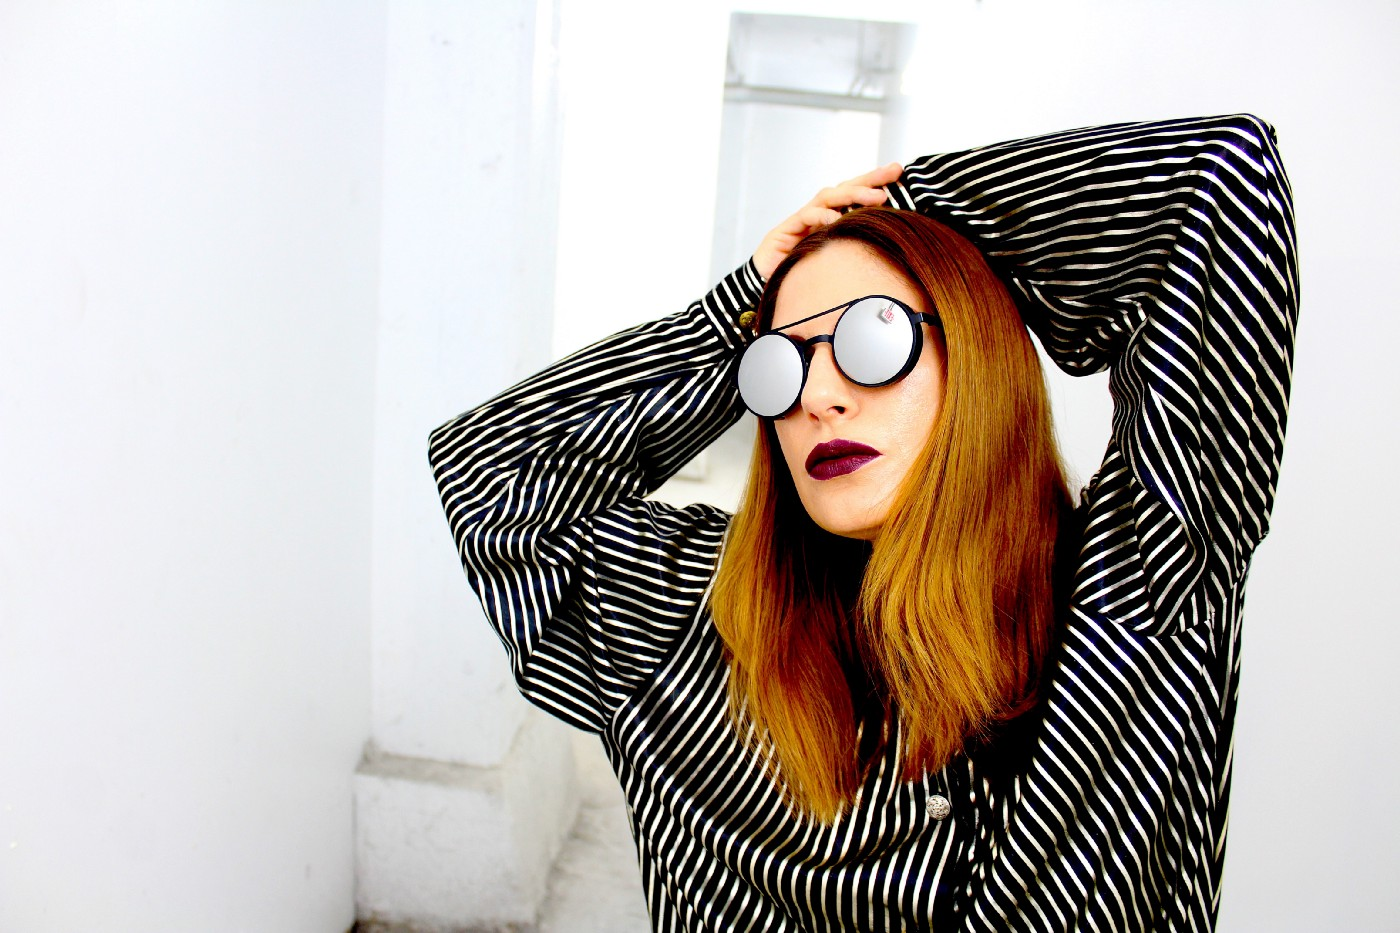 A woman in round-framed sunglasses and a striped shirt strikes a pose with her hands on her head.